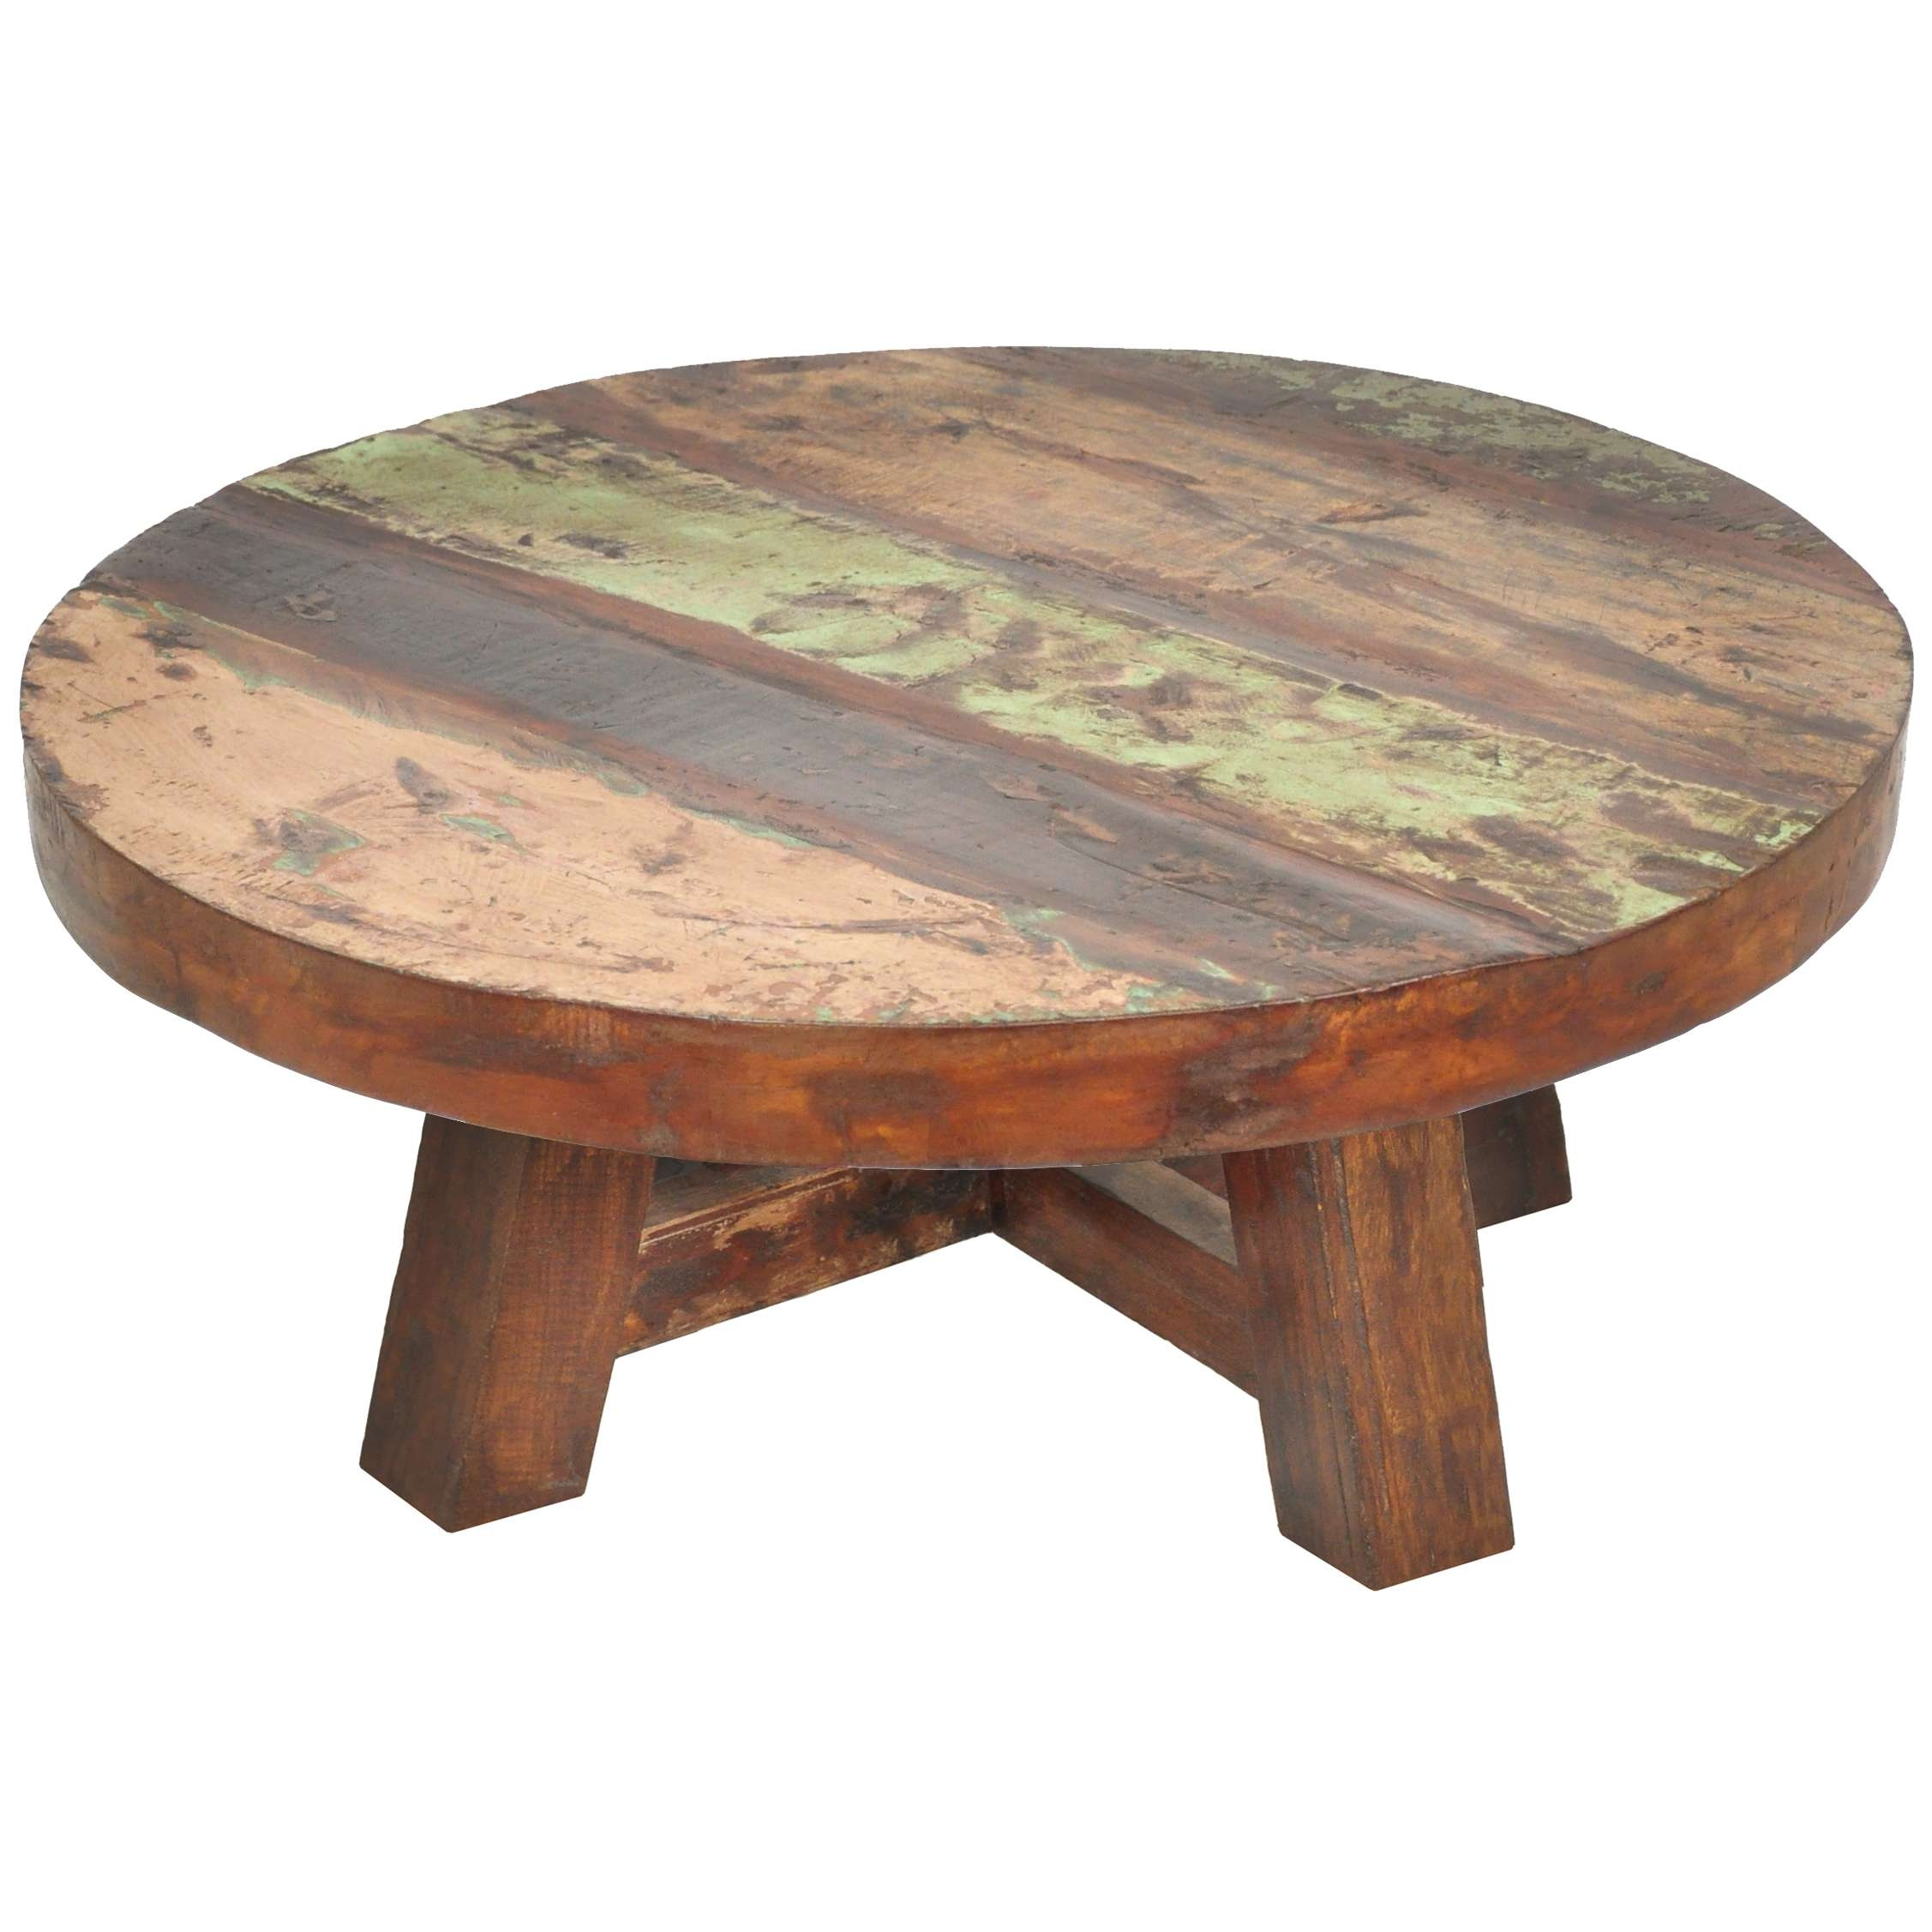 Best Small Coffee Tables 2019 Latest Small Round Coffee Tables